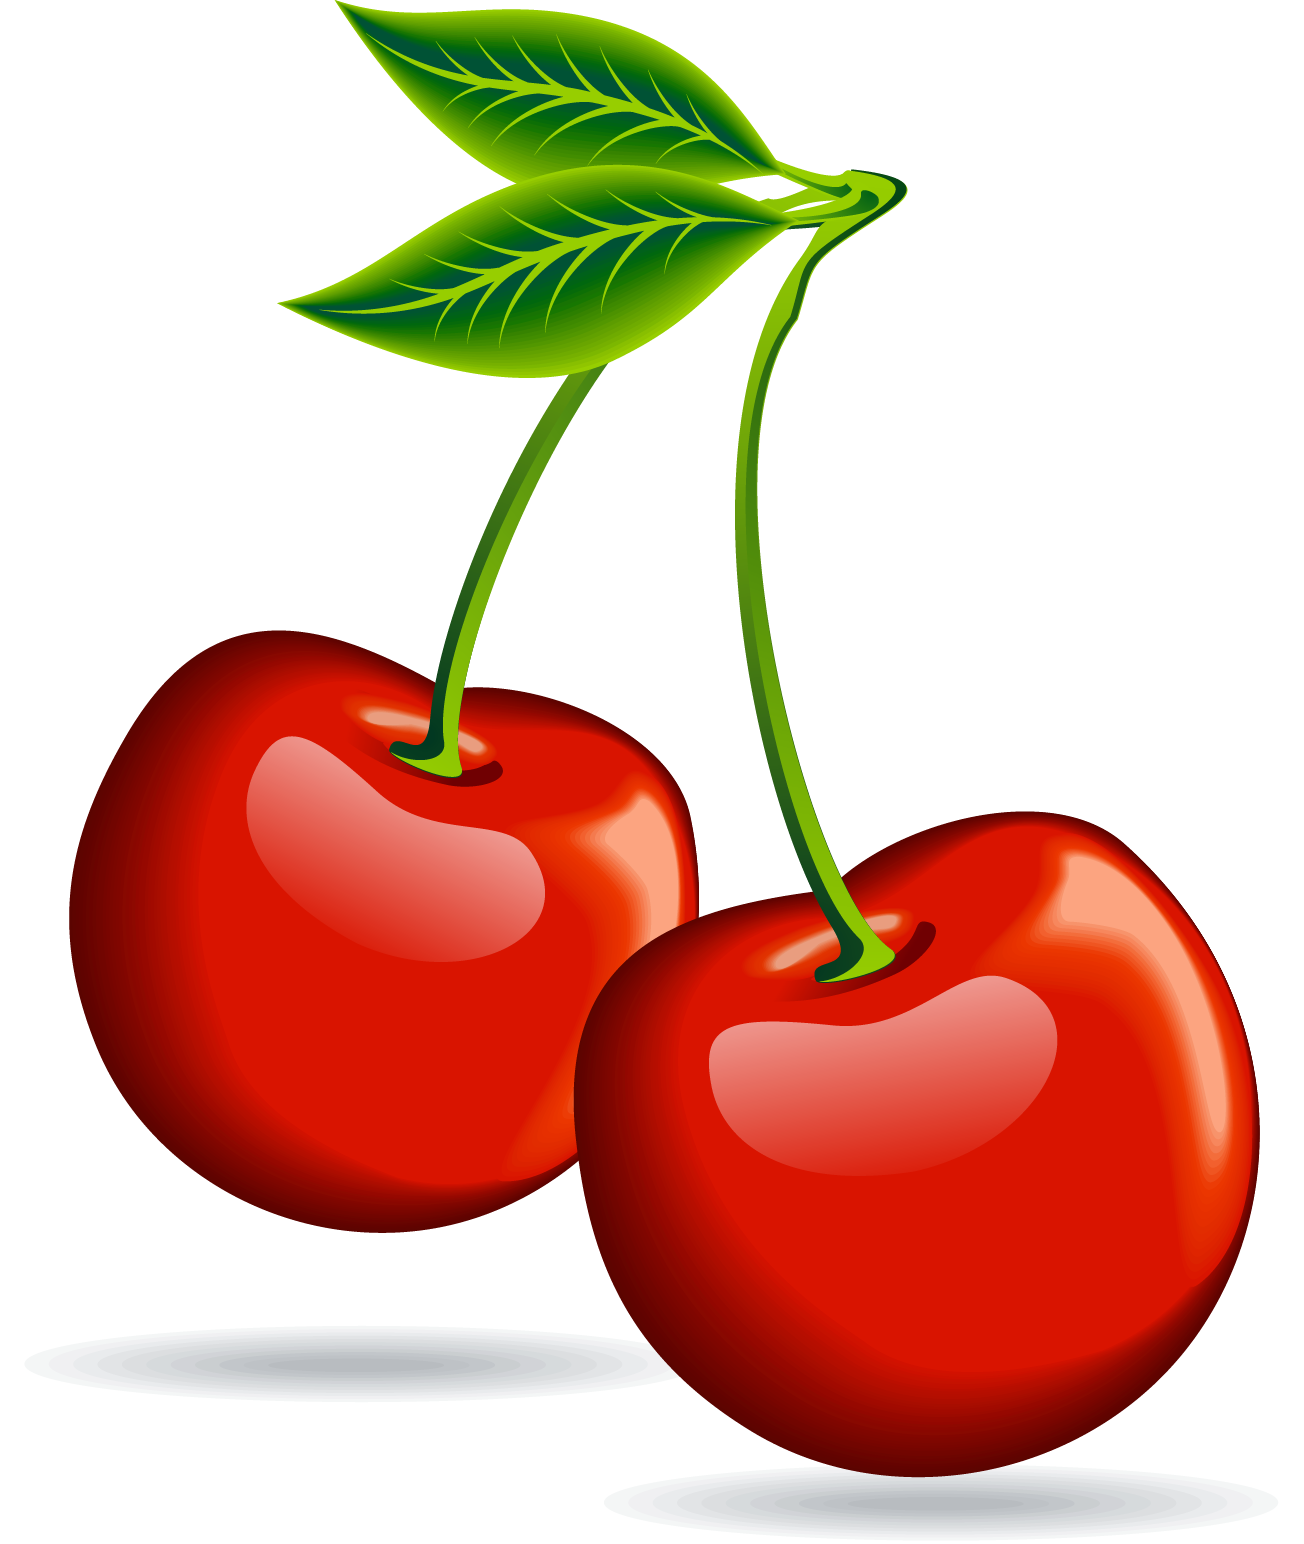 Cherry clipart transparent background, Cherry transparent.